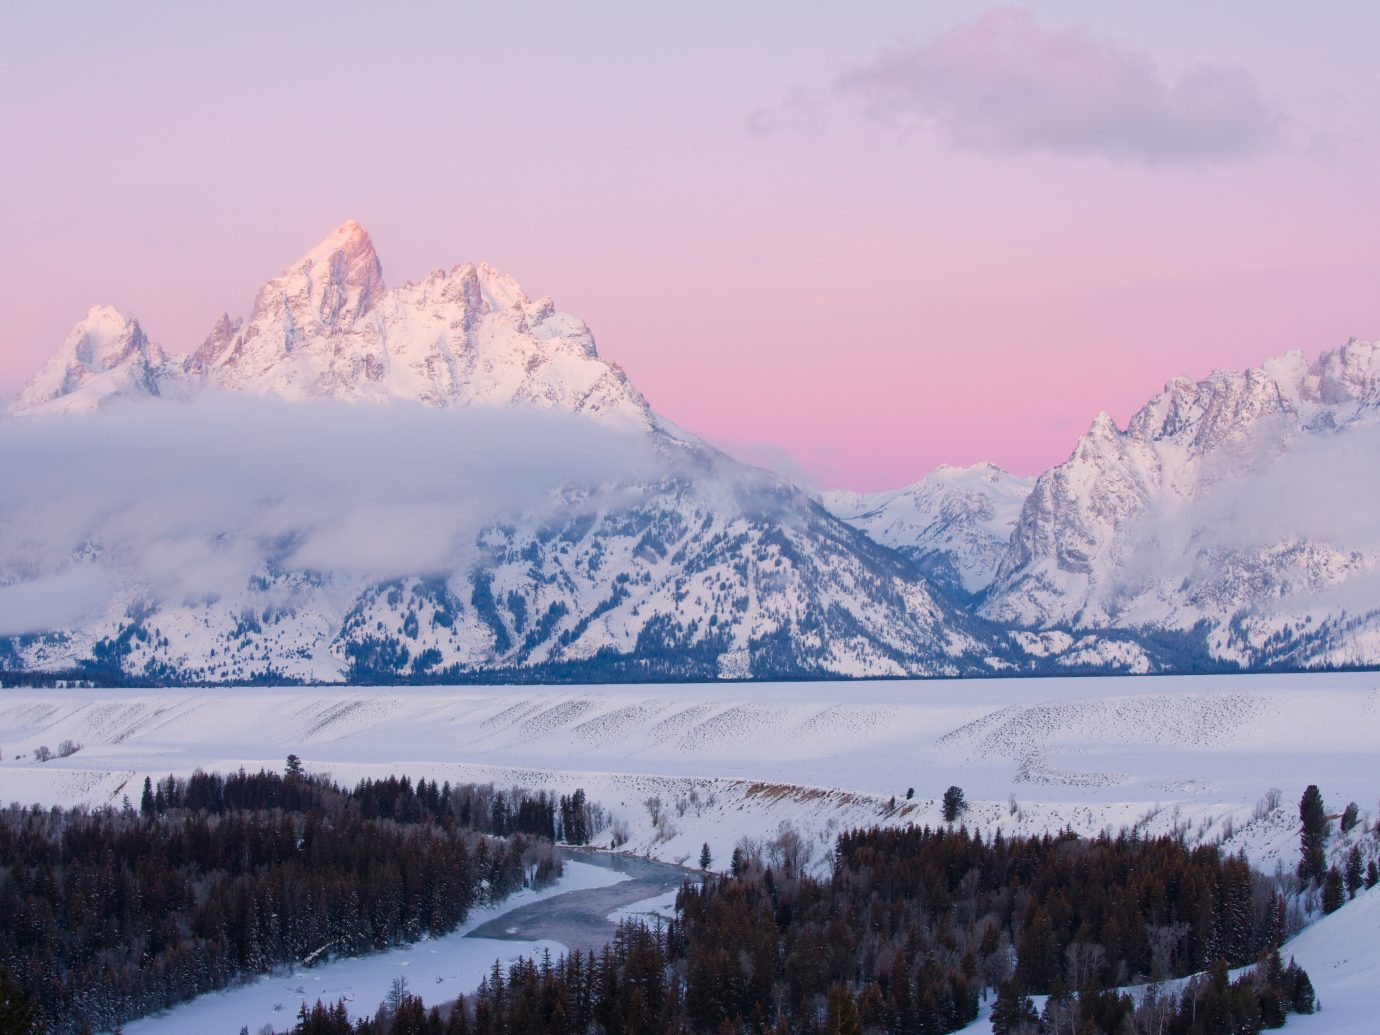 """Teton mountain range at sunrise in winter snow. Snake River overlook, Grand Tetons National Park, Wyoming MORE TETON MOUNTAINS"""